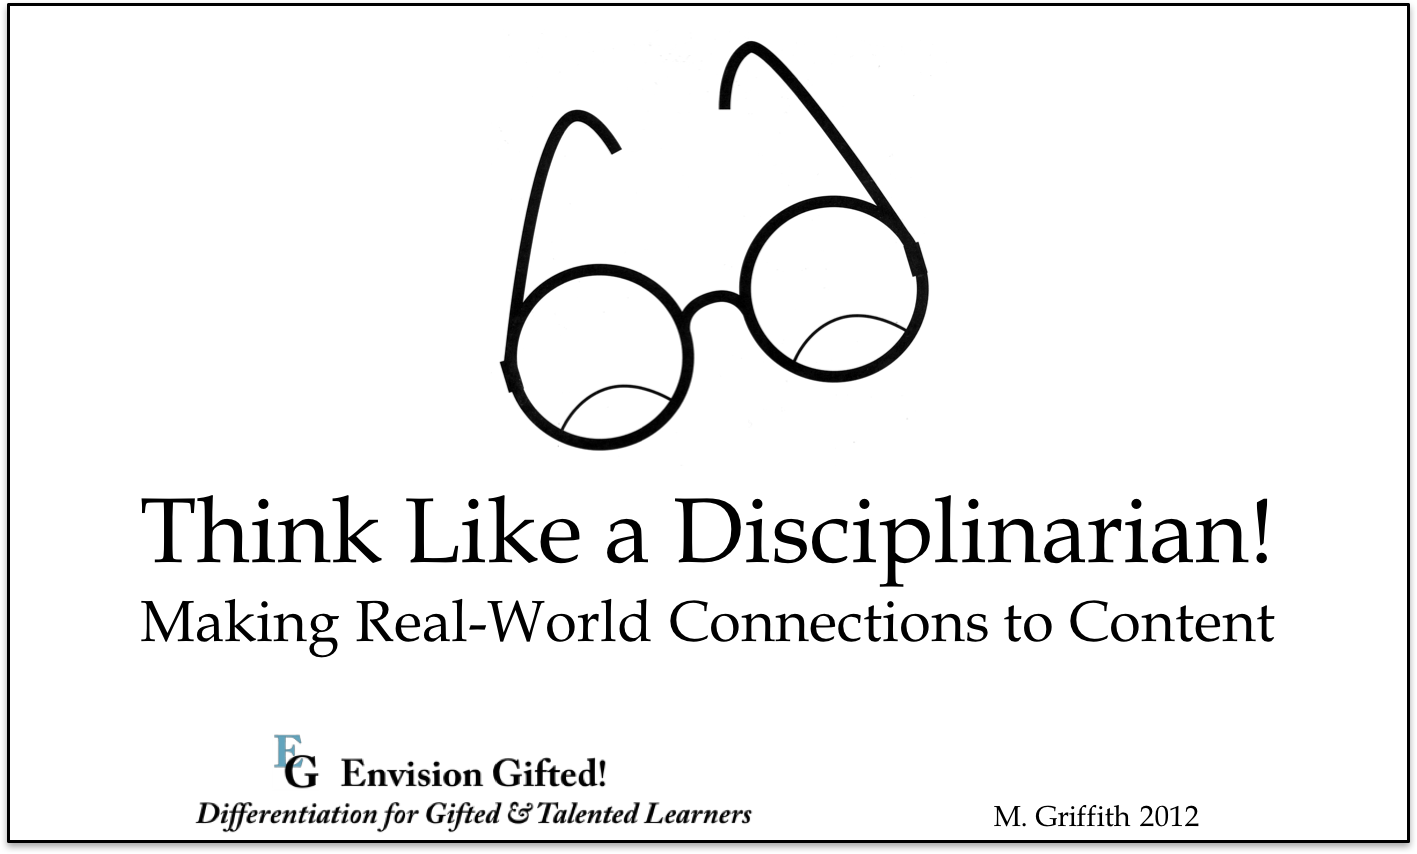 Envision Gifted. Think Like a Disciplinarian